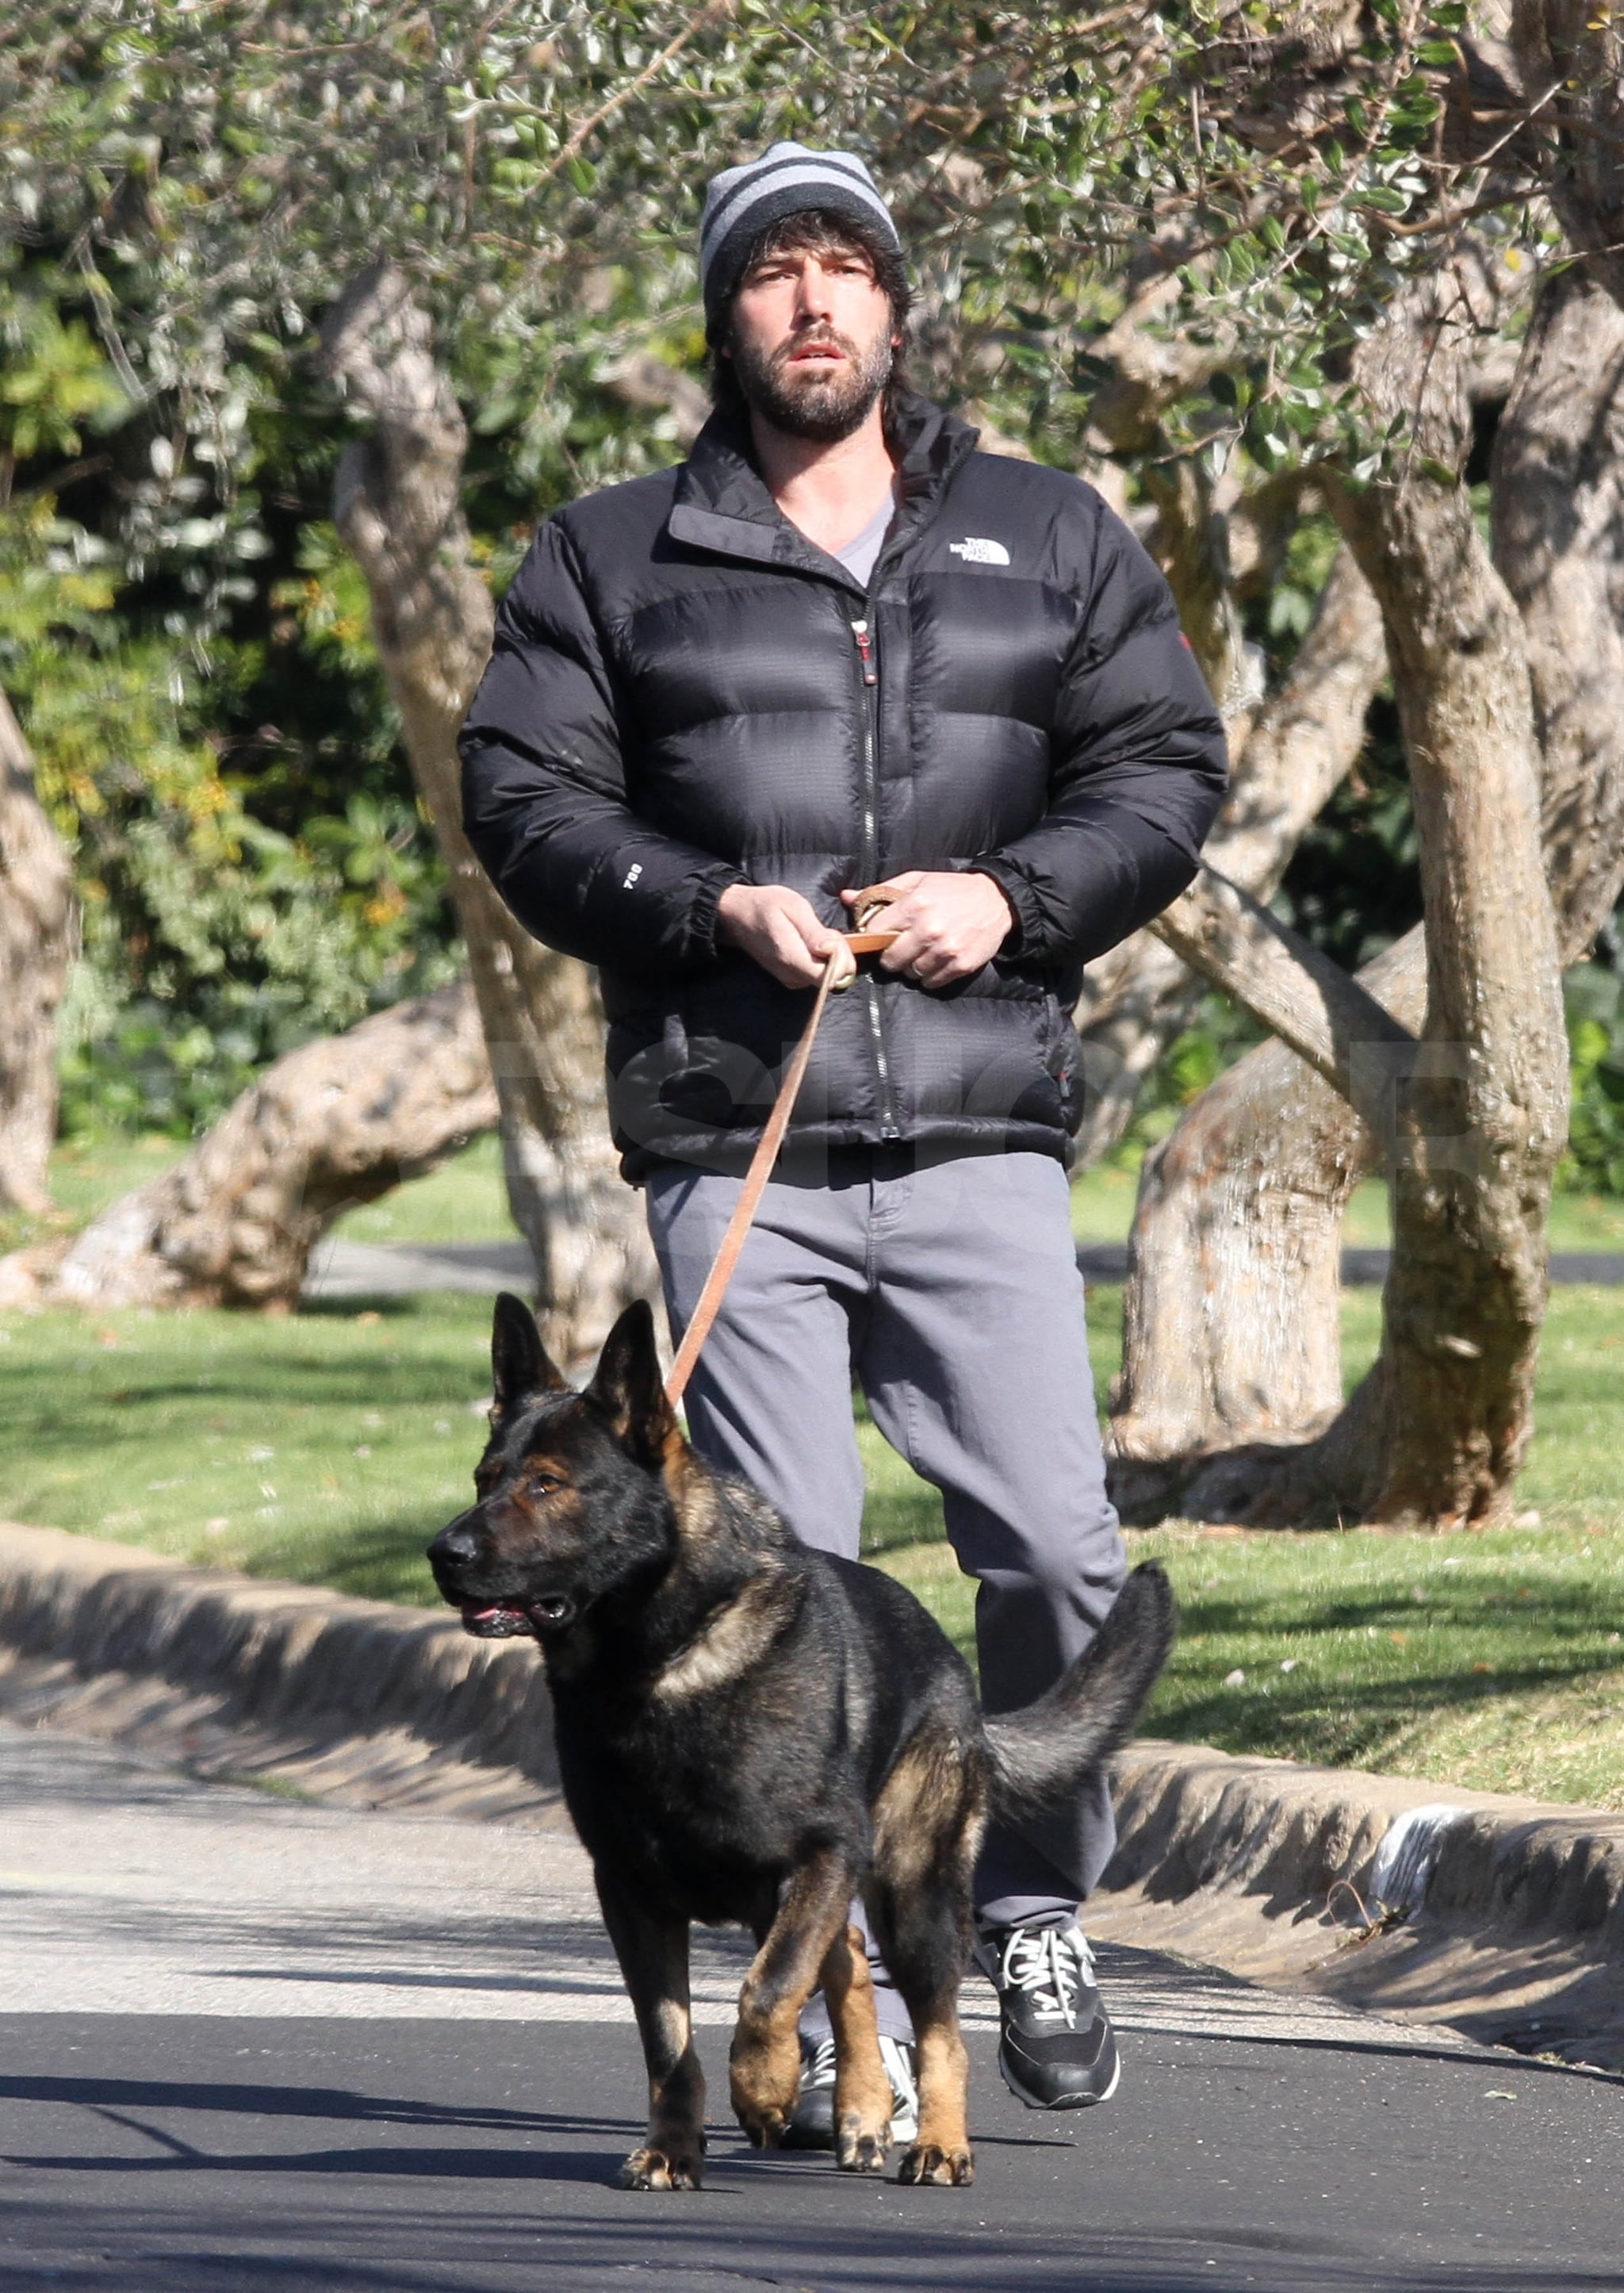 Ben Affleck went for a walk with his dog.